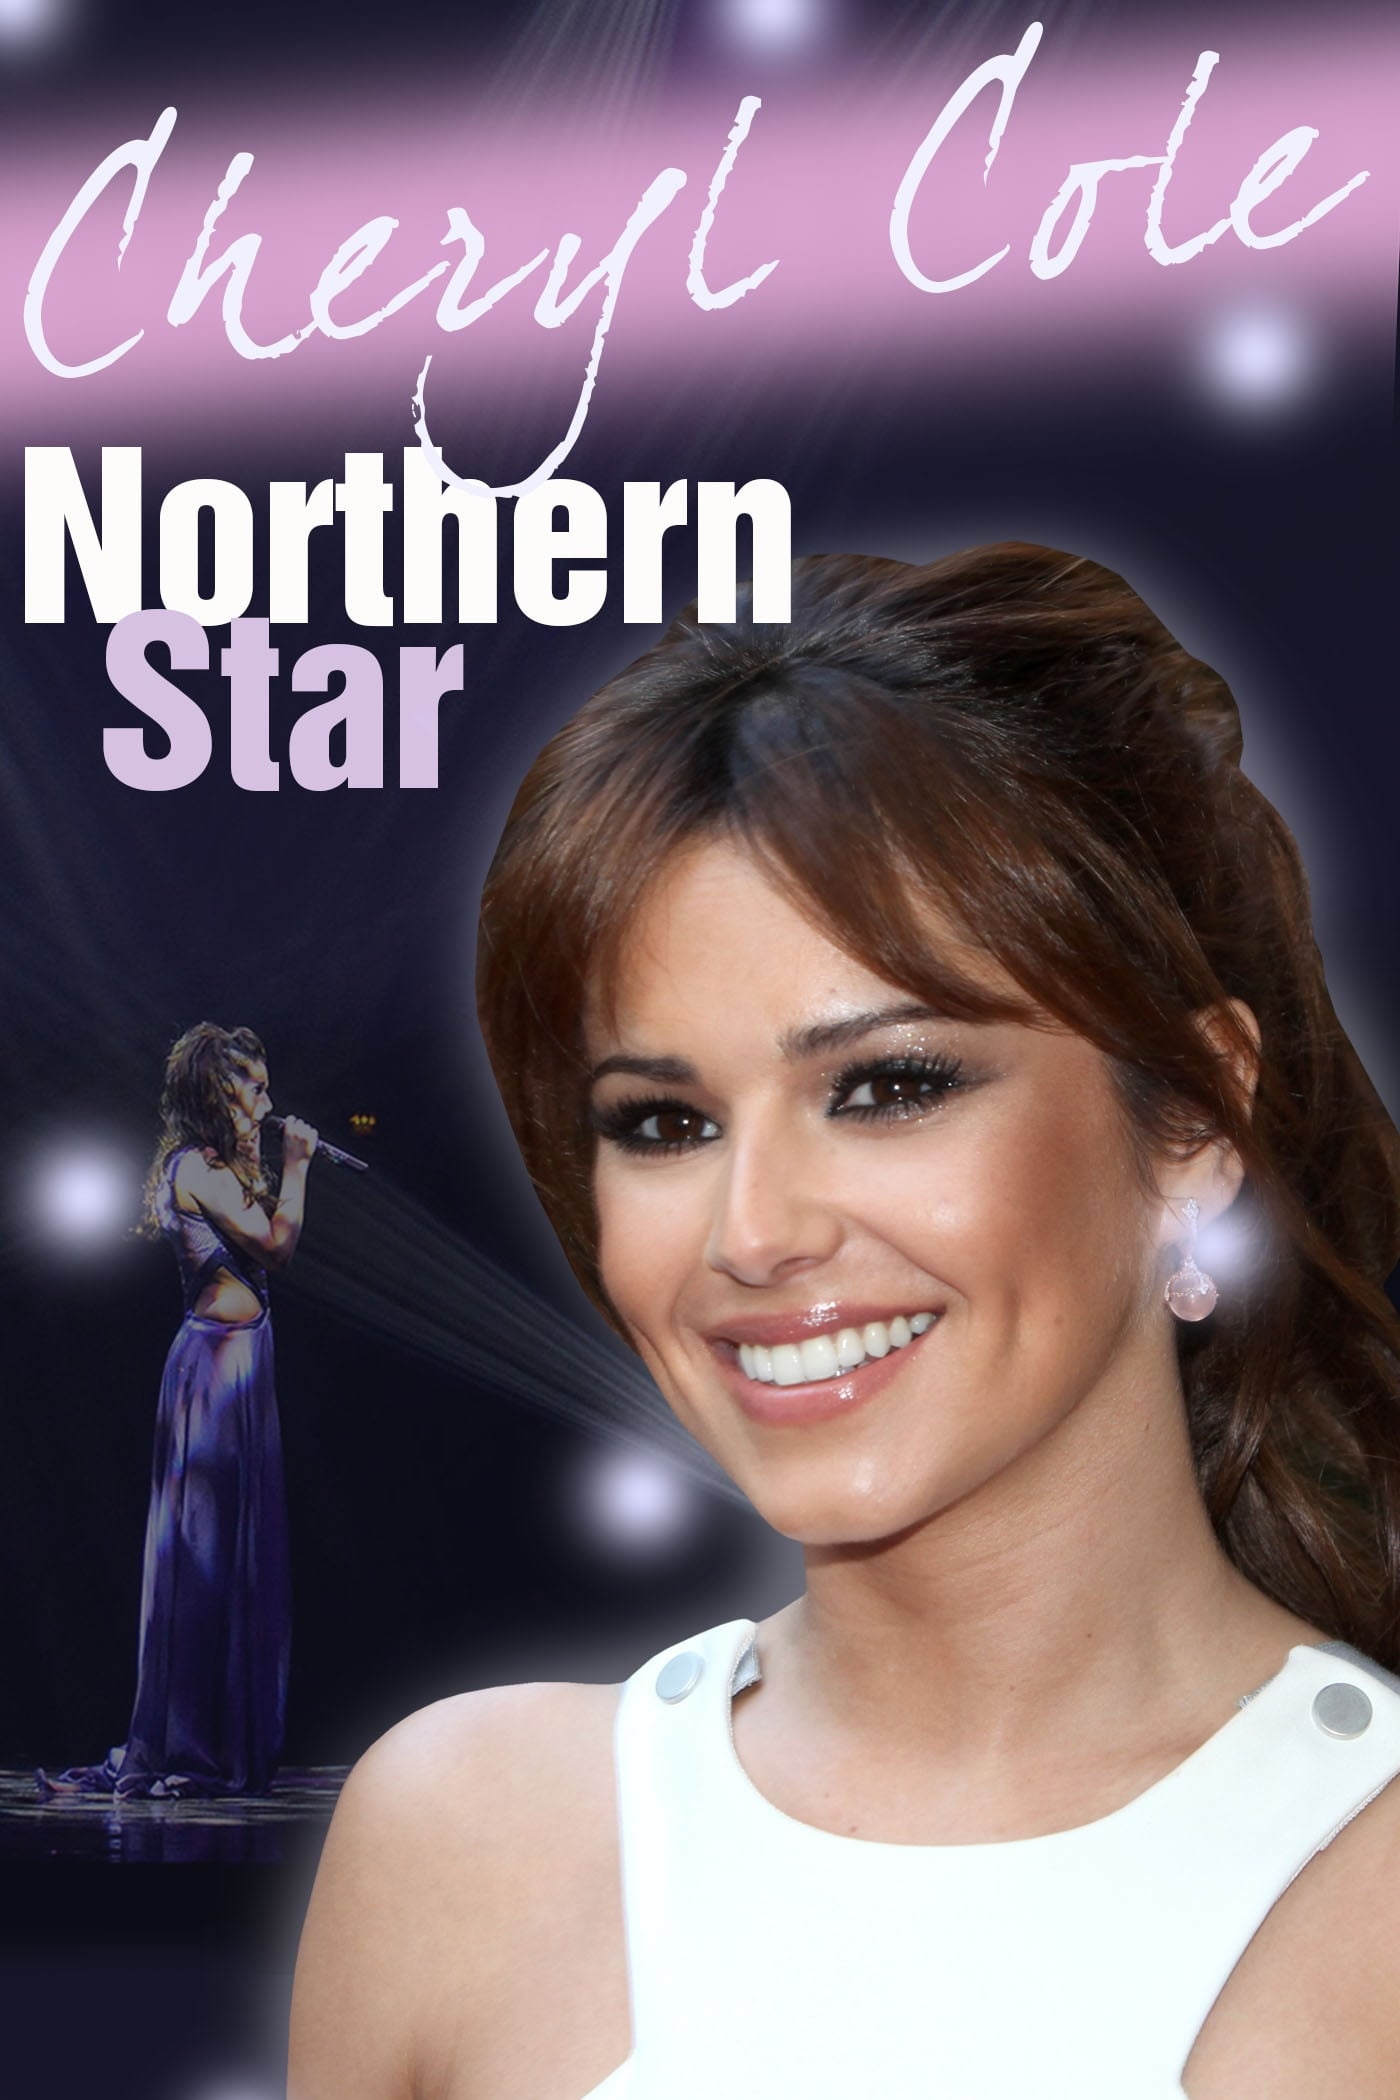 Cheryl Cole: Northern Star on FREECABLE TV